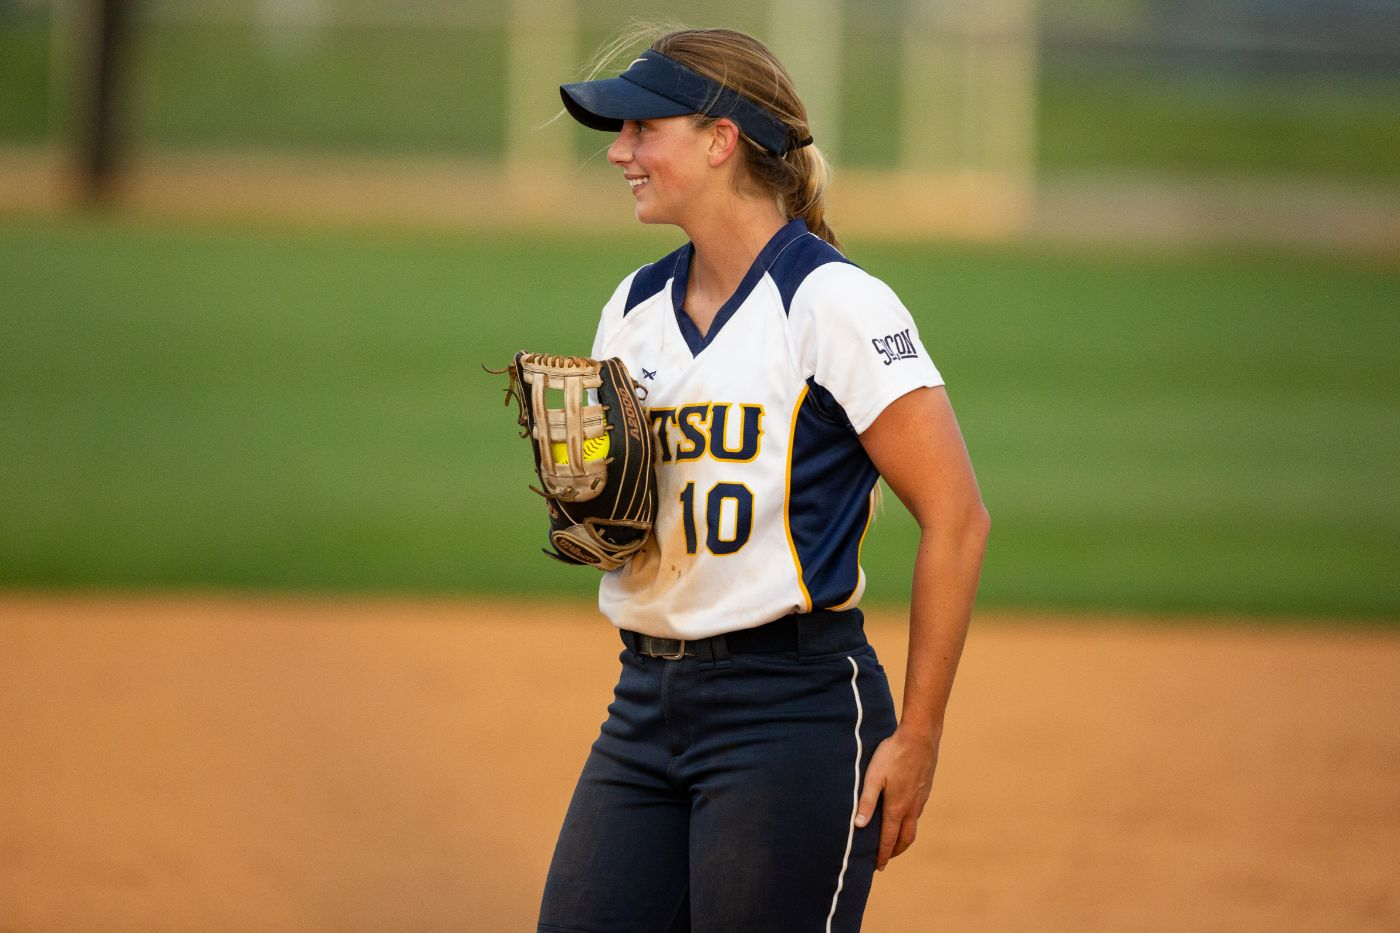 ETSU Falls in Extra-Inning Battle